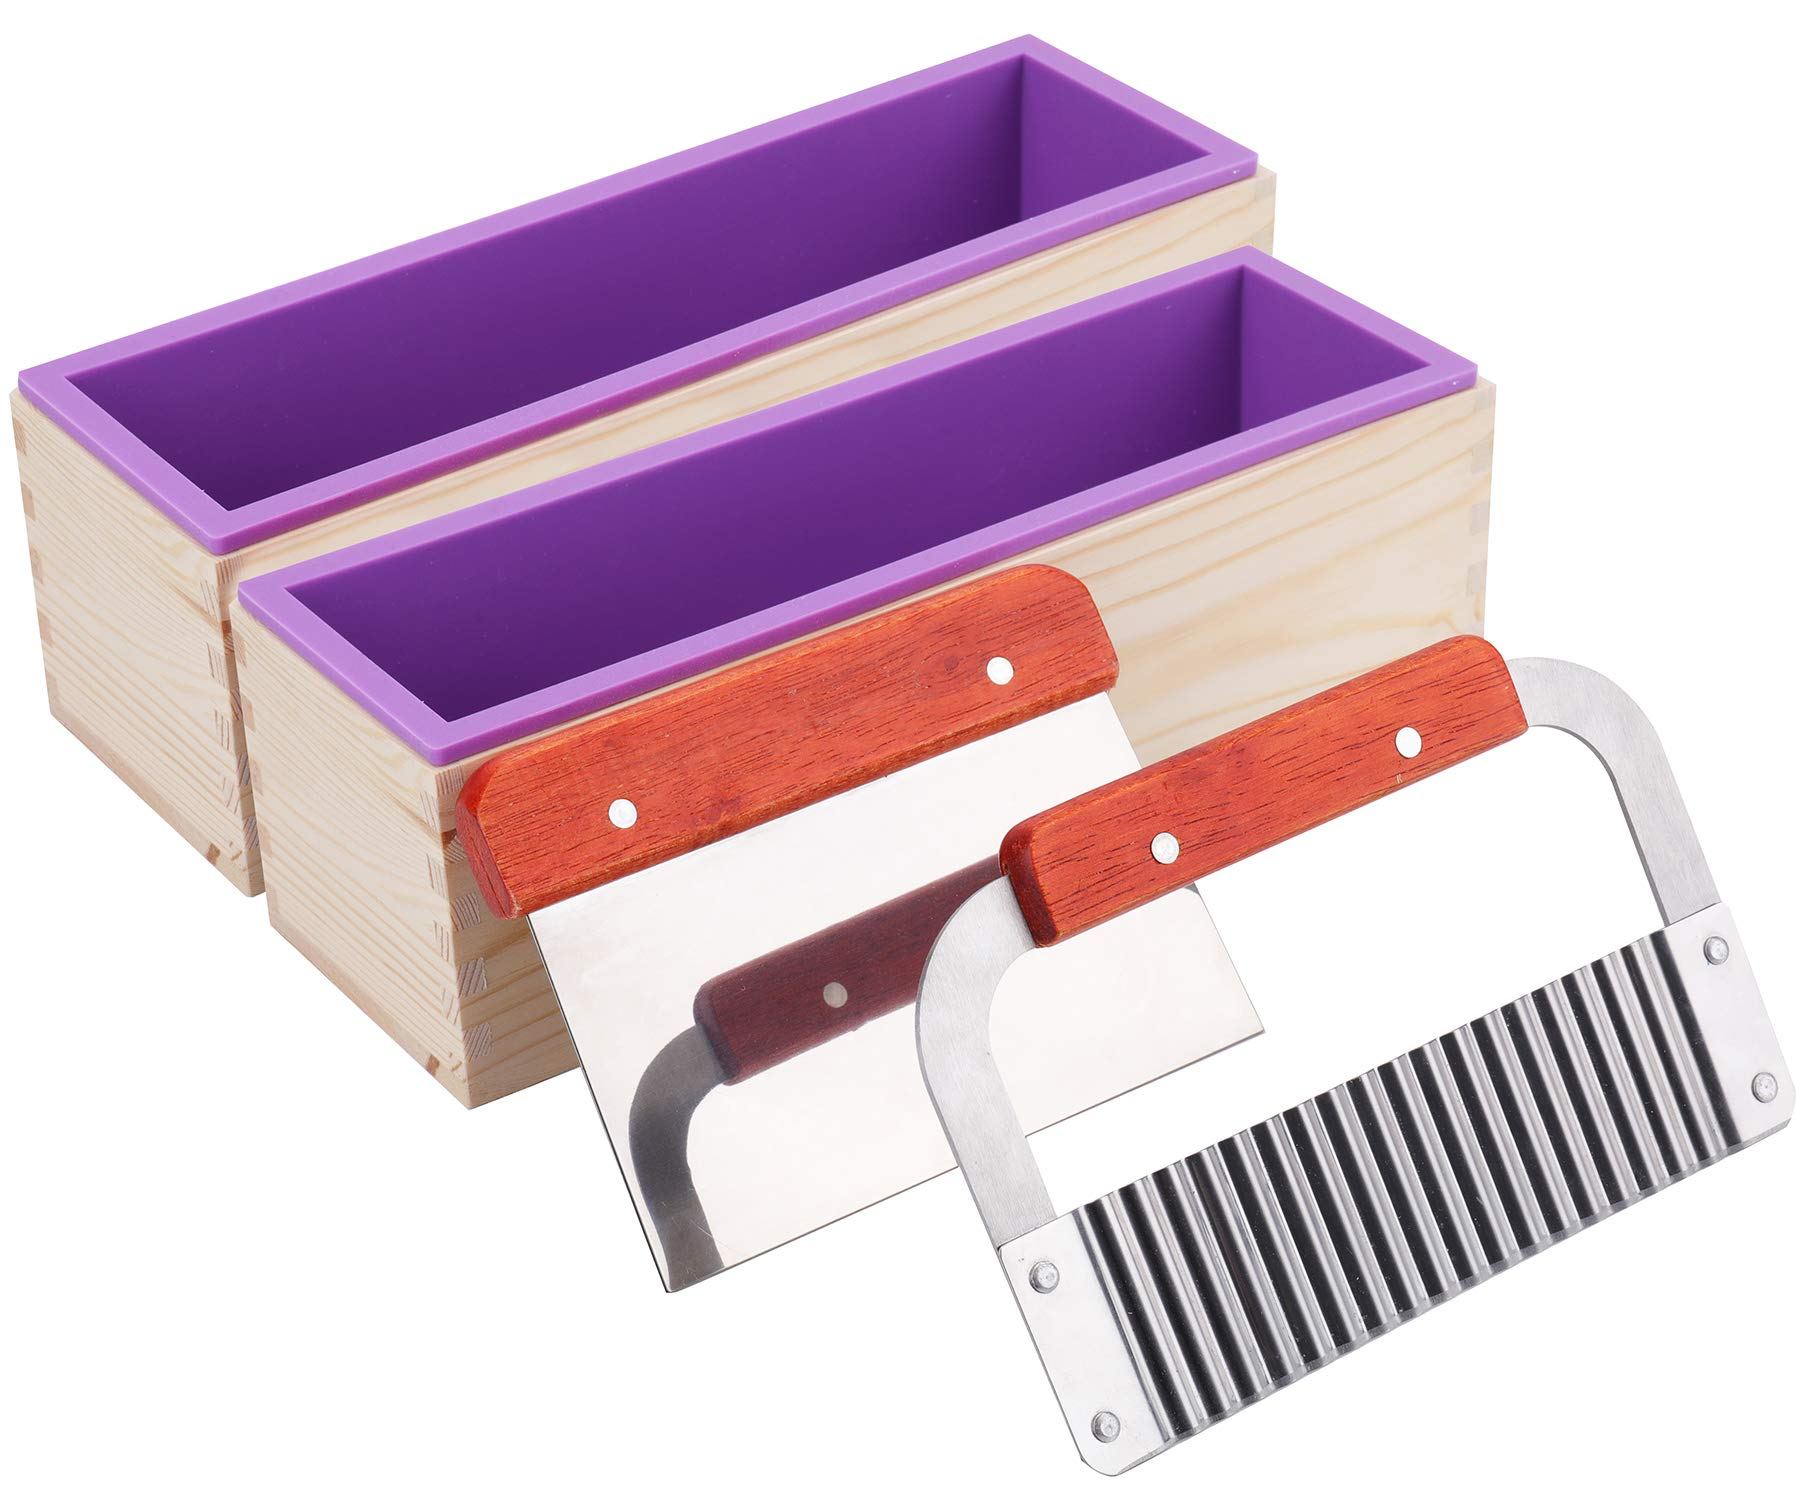 Lawei 2 Pack Silicone Soap Molds Kit - 42 oz Loaf Soap Molds with Wood Box and 2 Cutters, Soap Making Molds for CP and MP Making